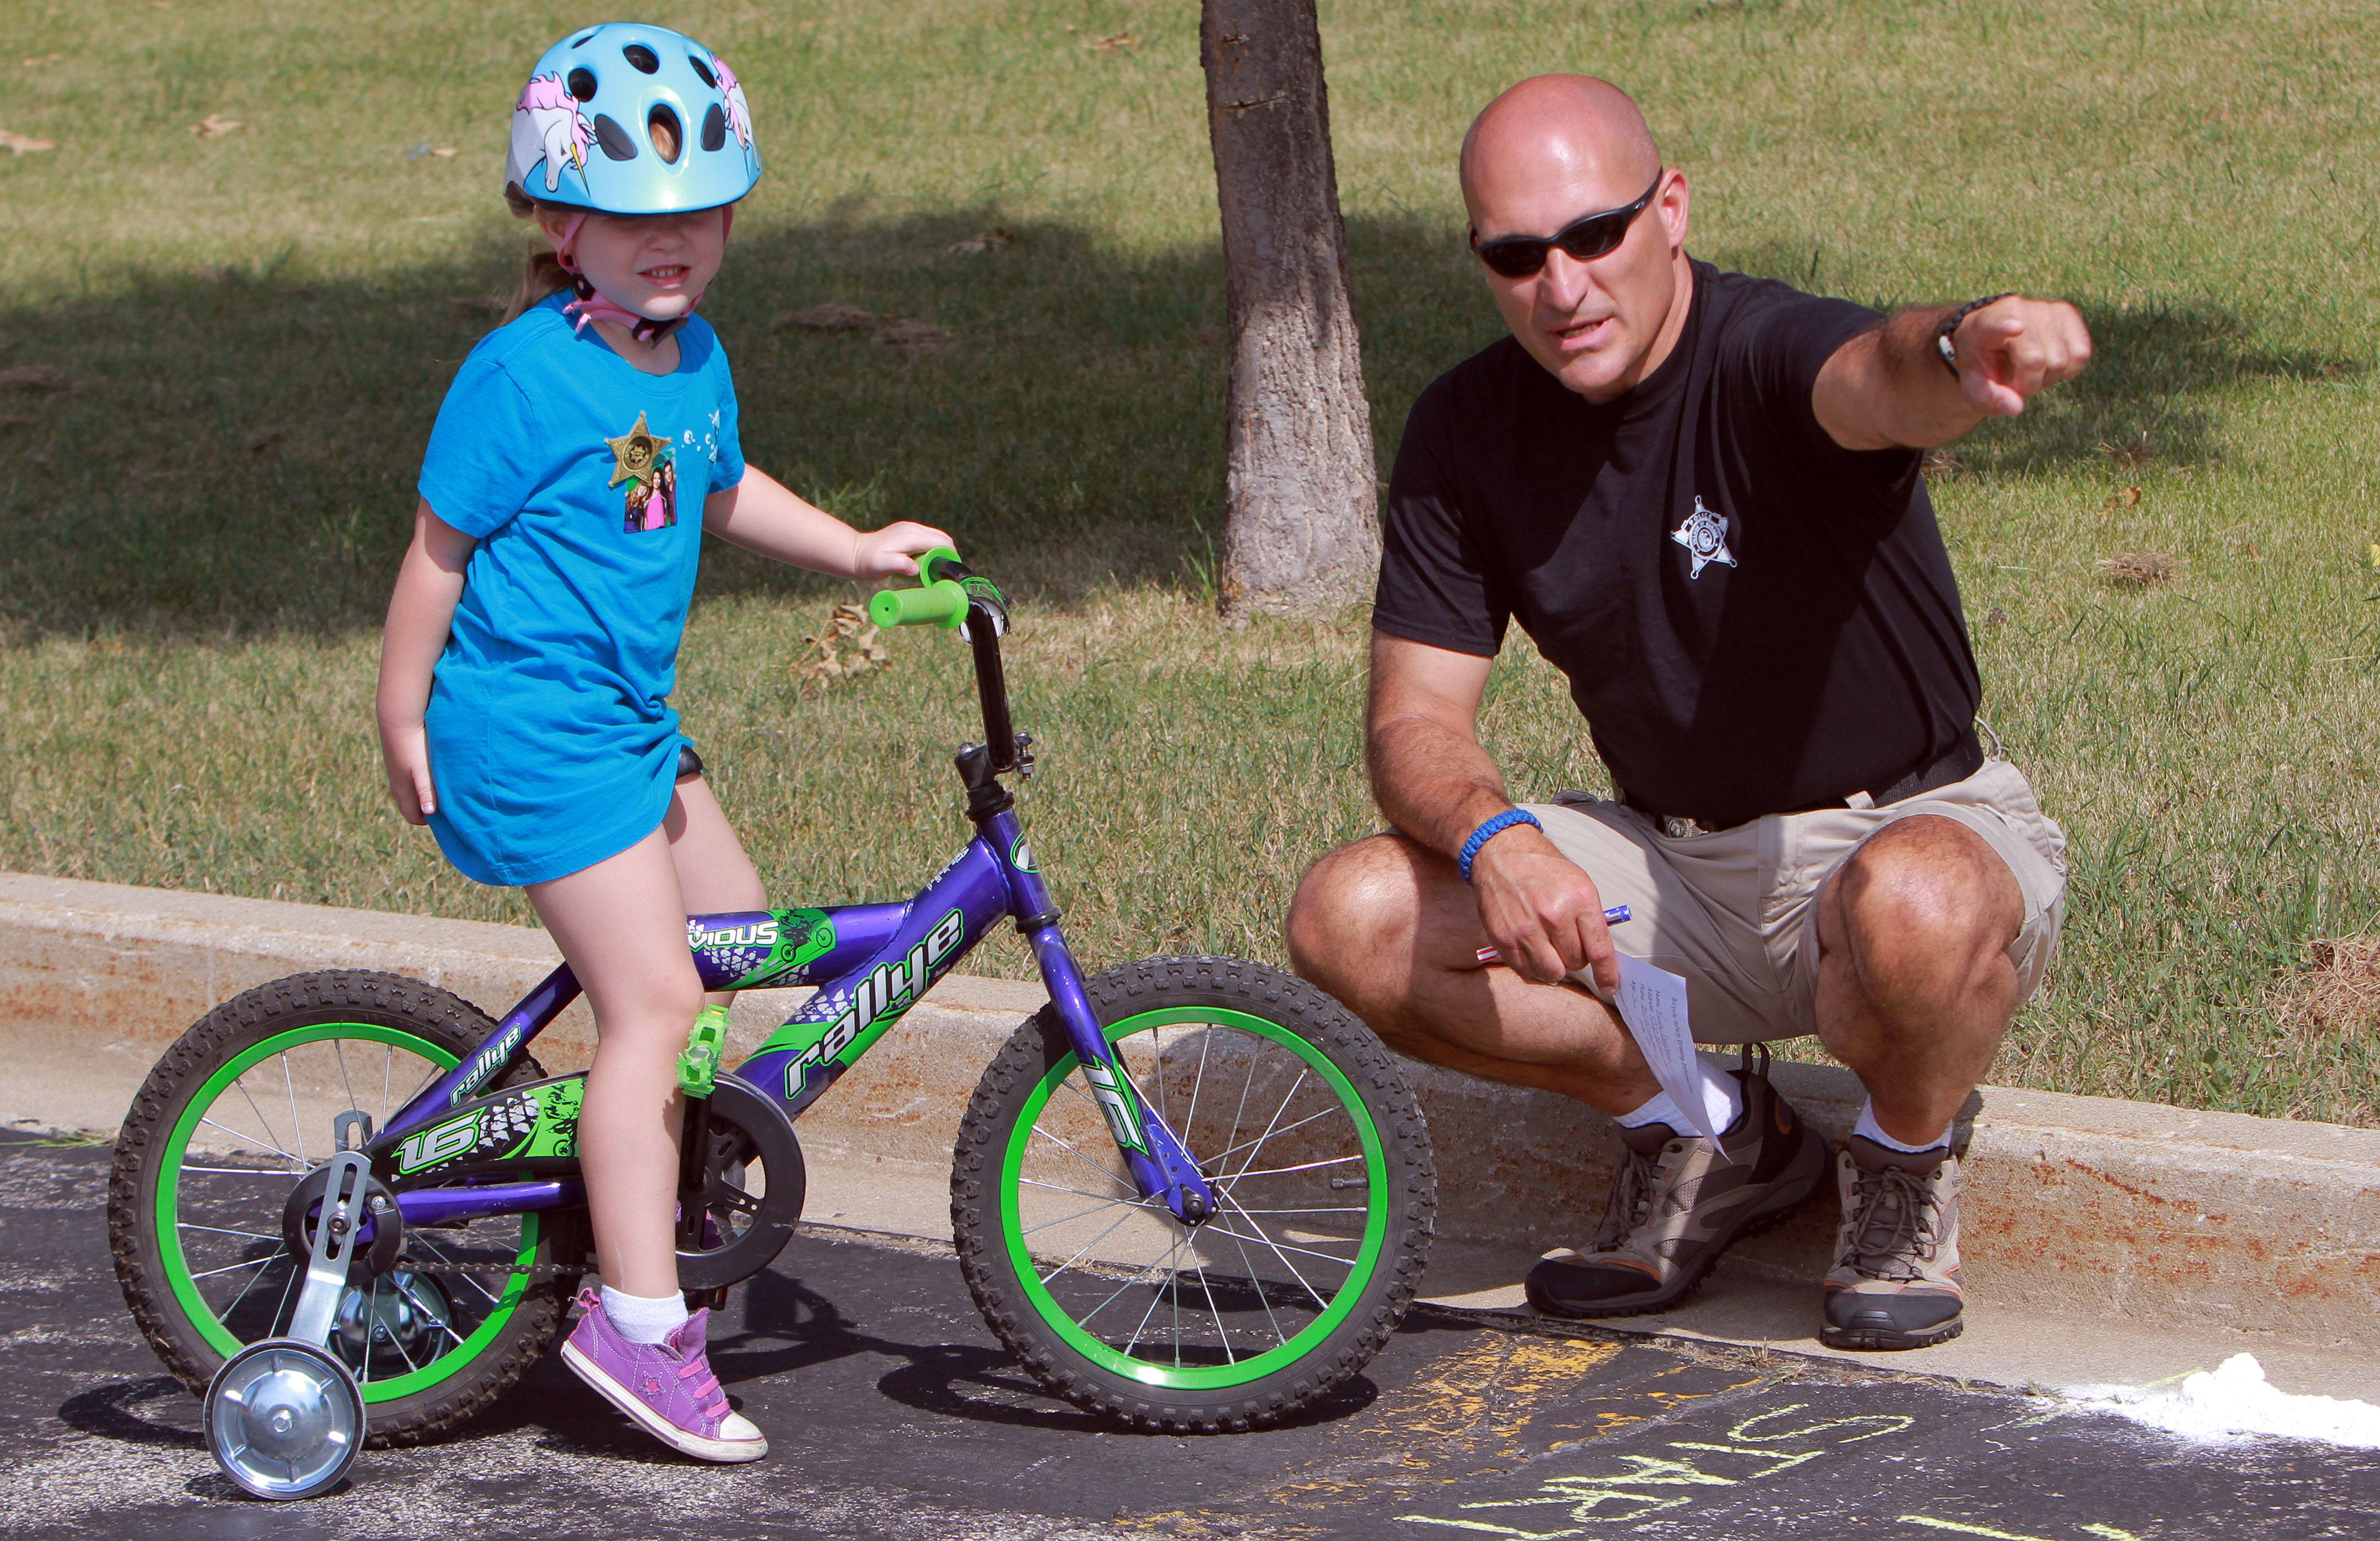 4-year-old Keira Dallstream of Gurnee gets some pointers from Gurnee Police officer Marty DePerte during a bike rodeo at Woodland Middle School in Gurnee Thursday.